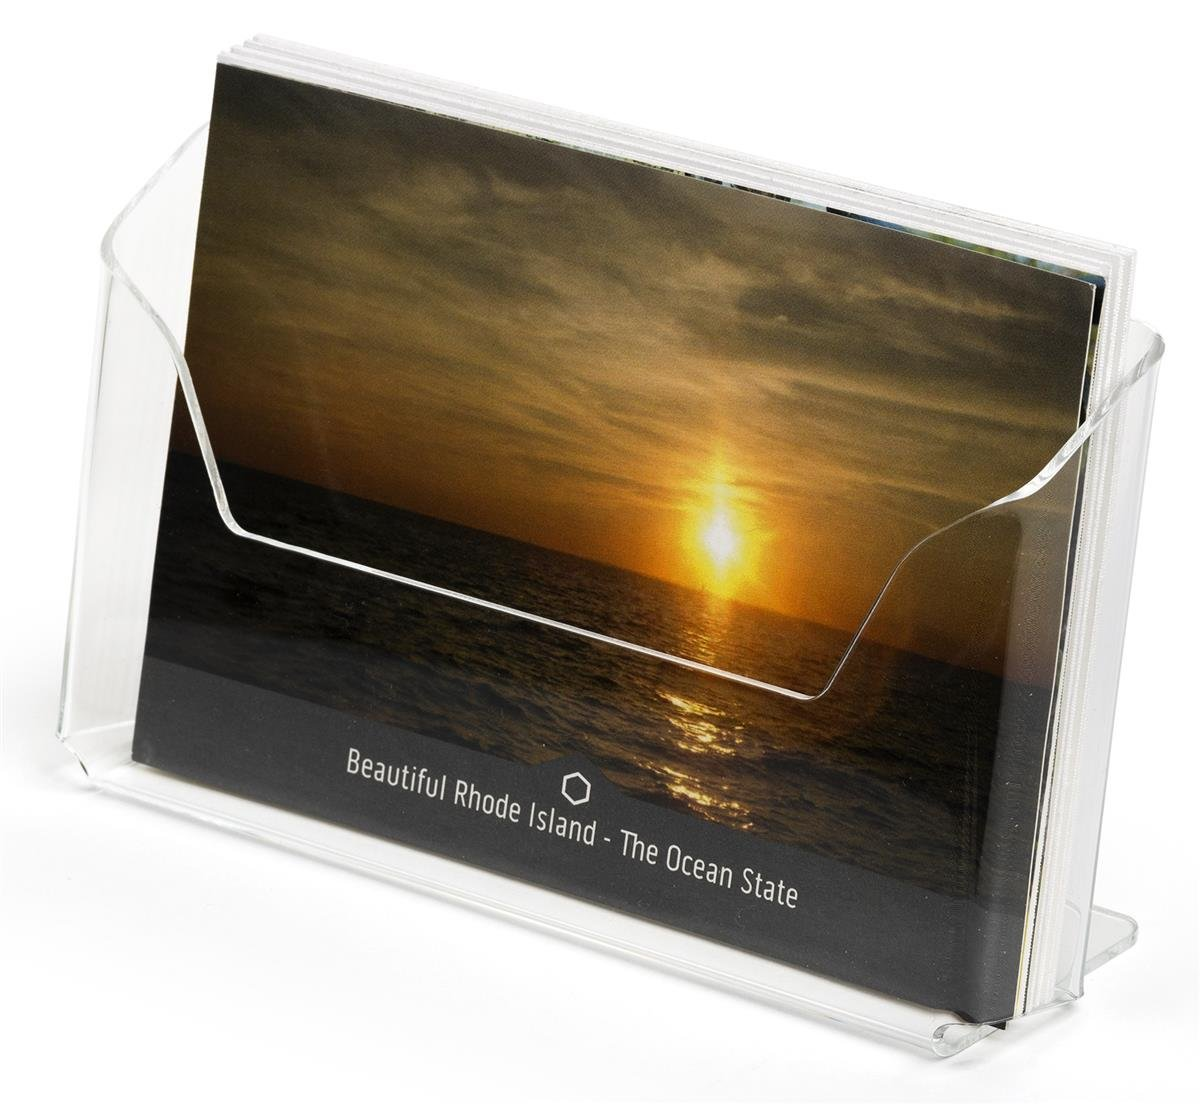 Displays2go Postcard Holders for Tabletop, Fits 6 x 4 Inch Cards, Set of Twenty - Clear (LHPCLAND) by Displays2go